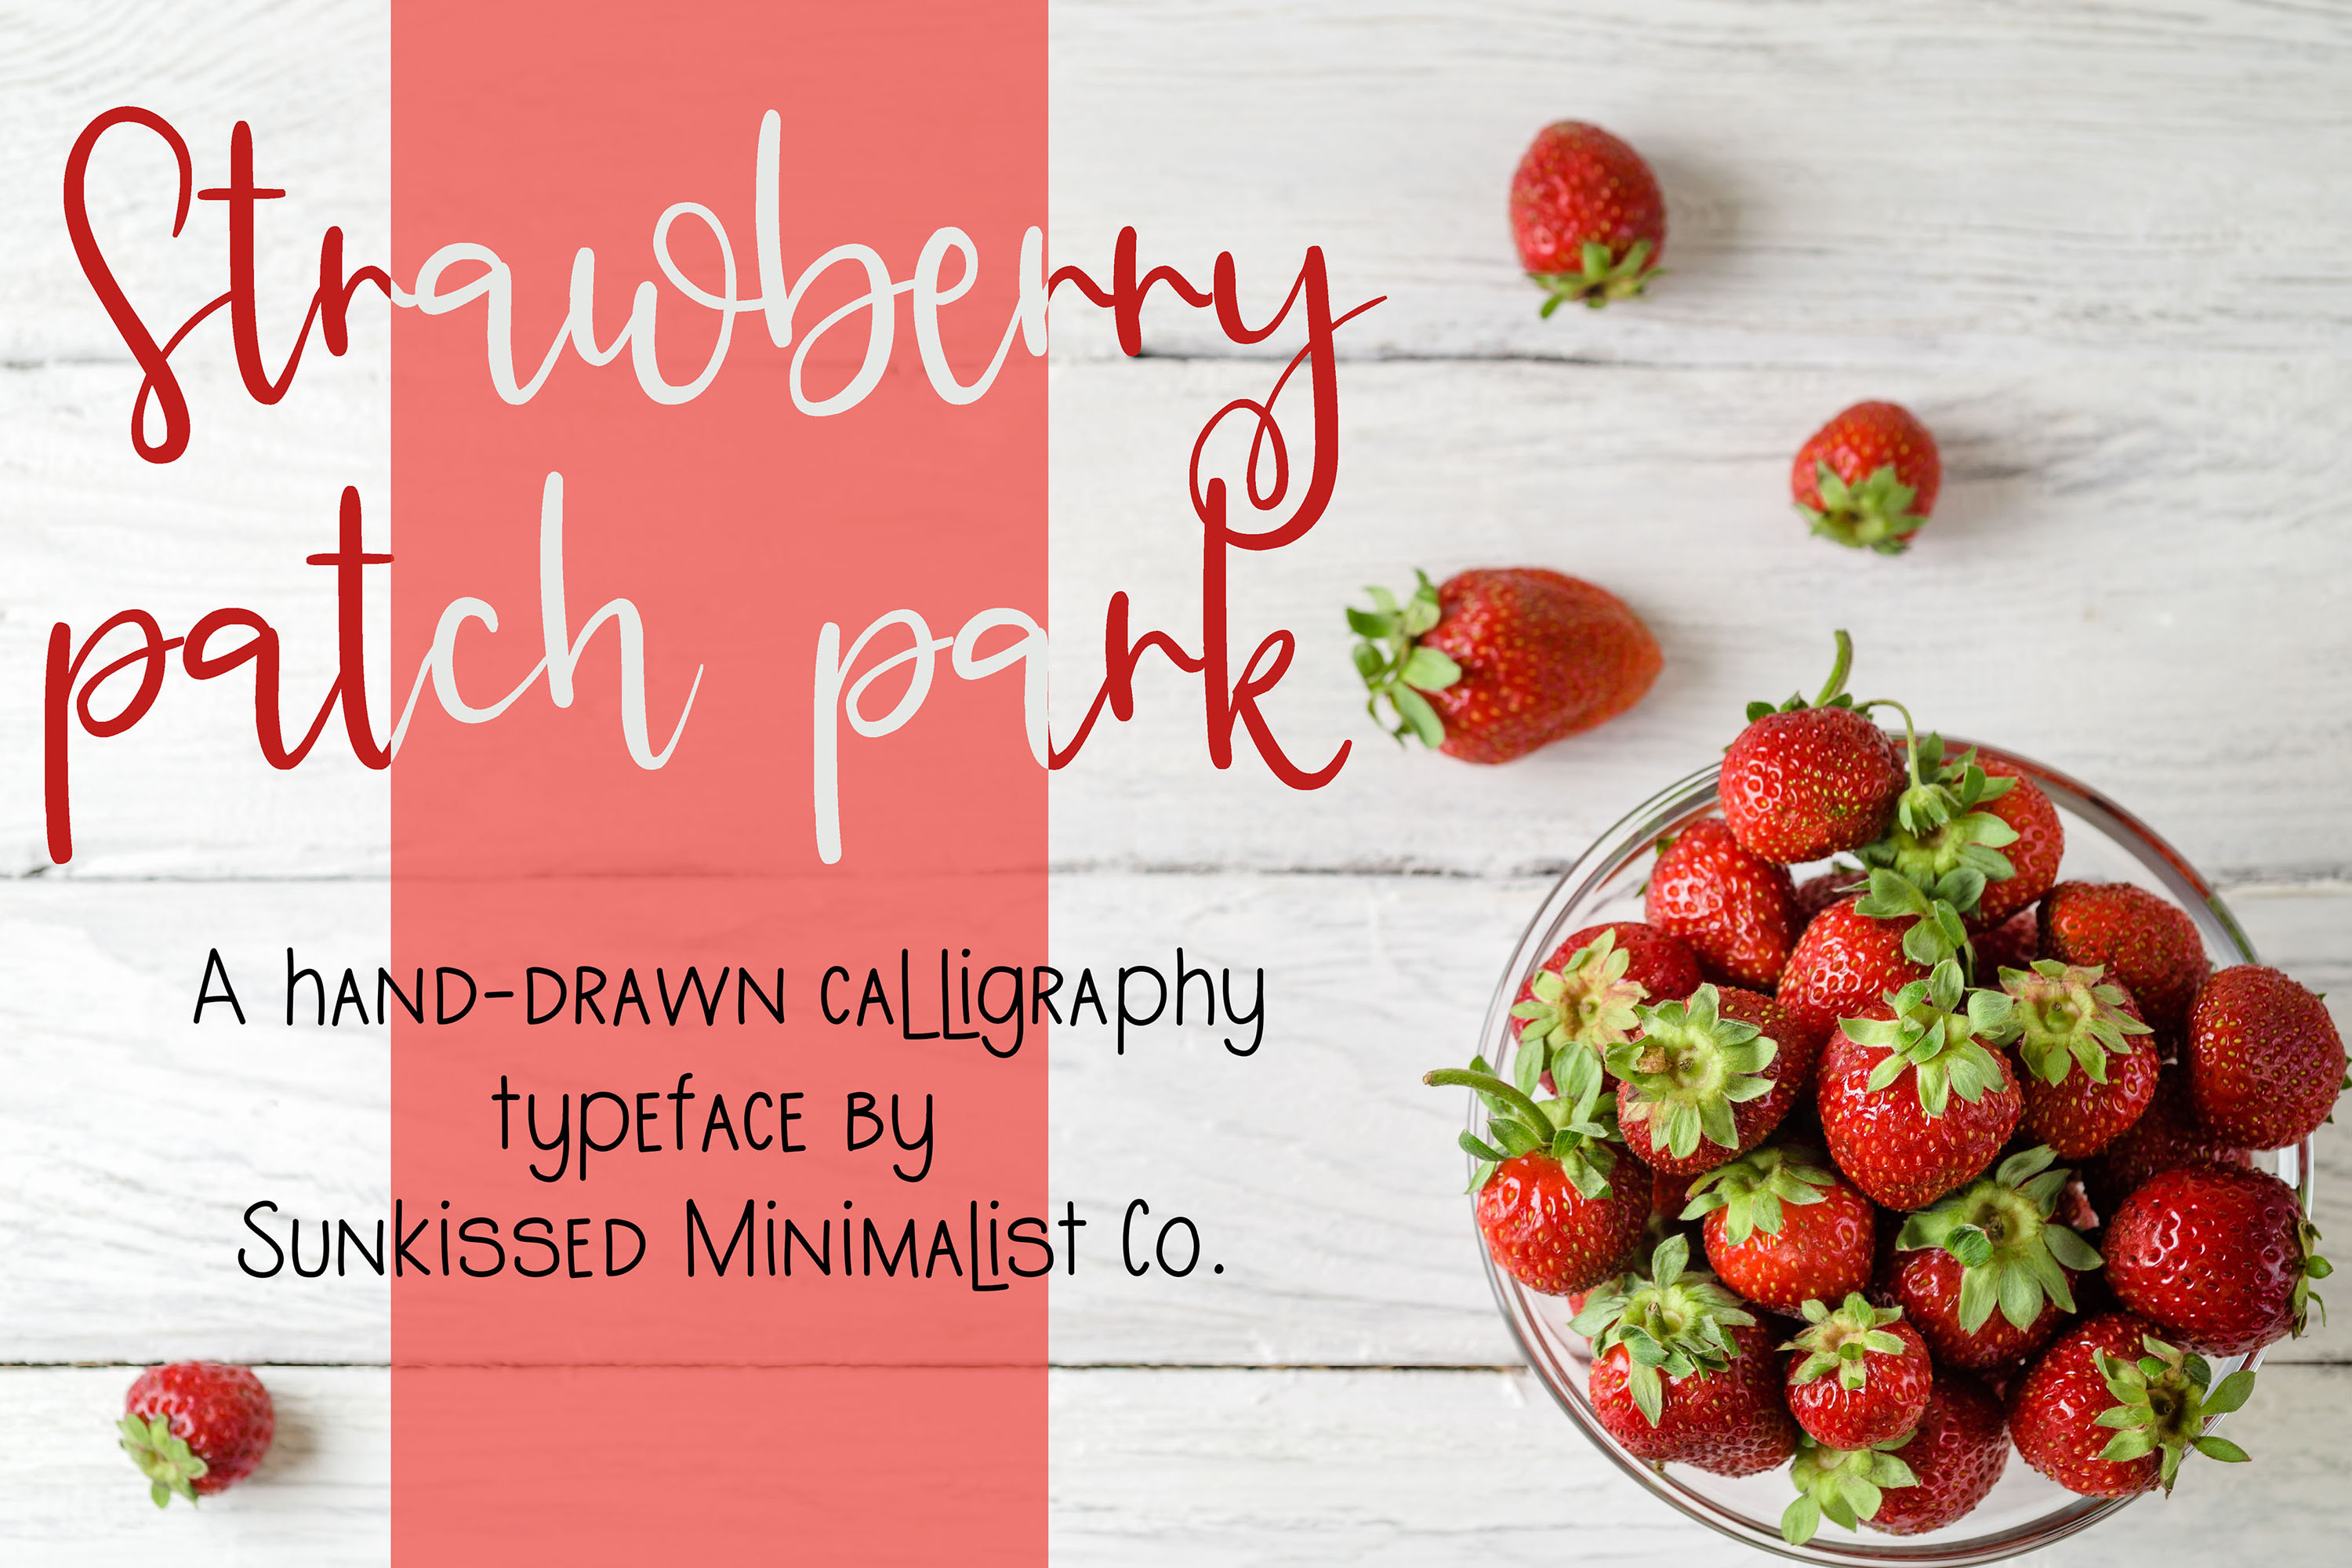 Strawberry Patch Park example image 1